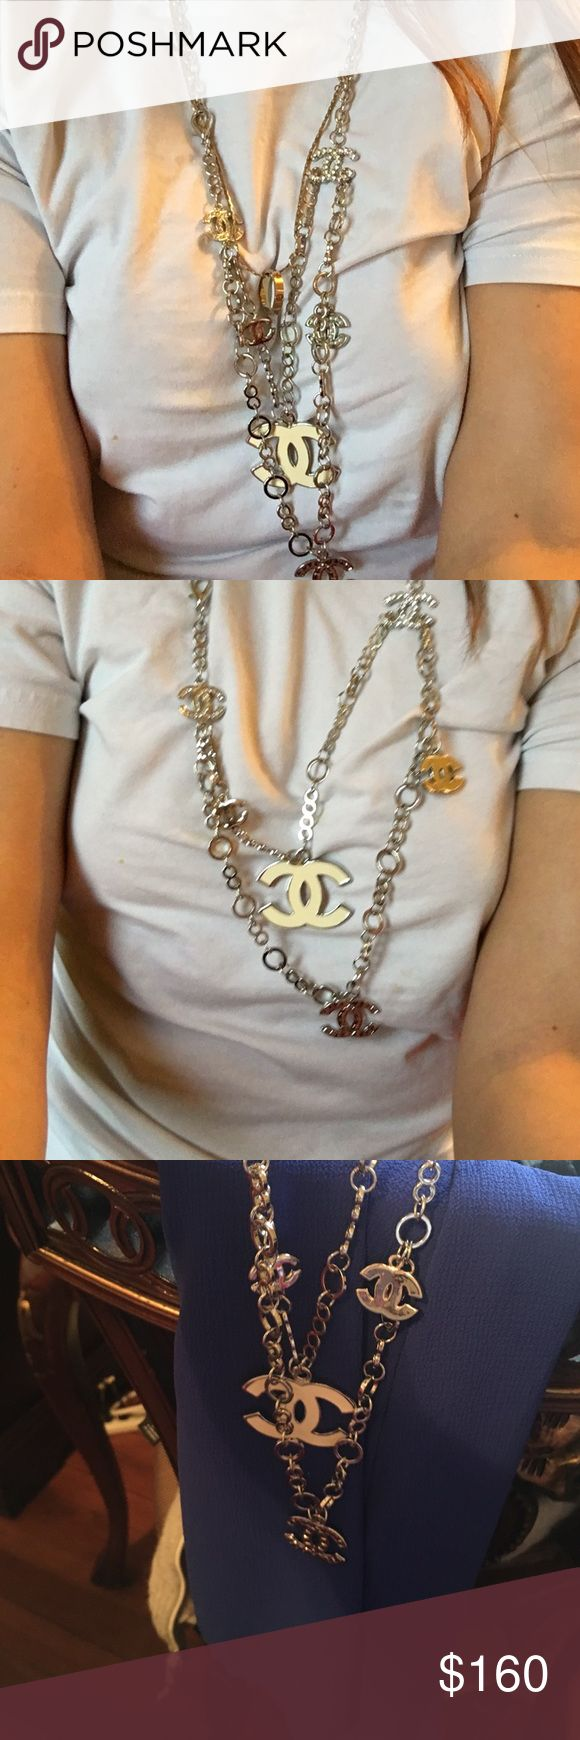 Chanel necklace Beutiful elegante , casual Chanel necklace silver , cream color , see in post CHANEL Jewelry Necklaces